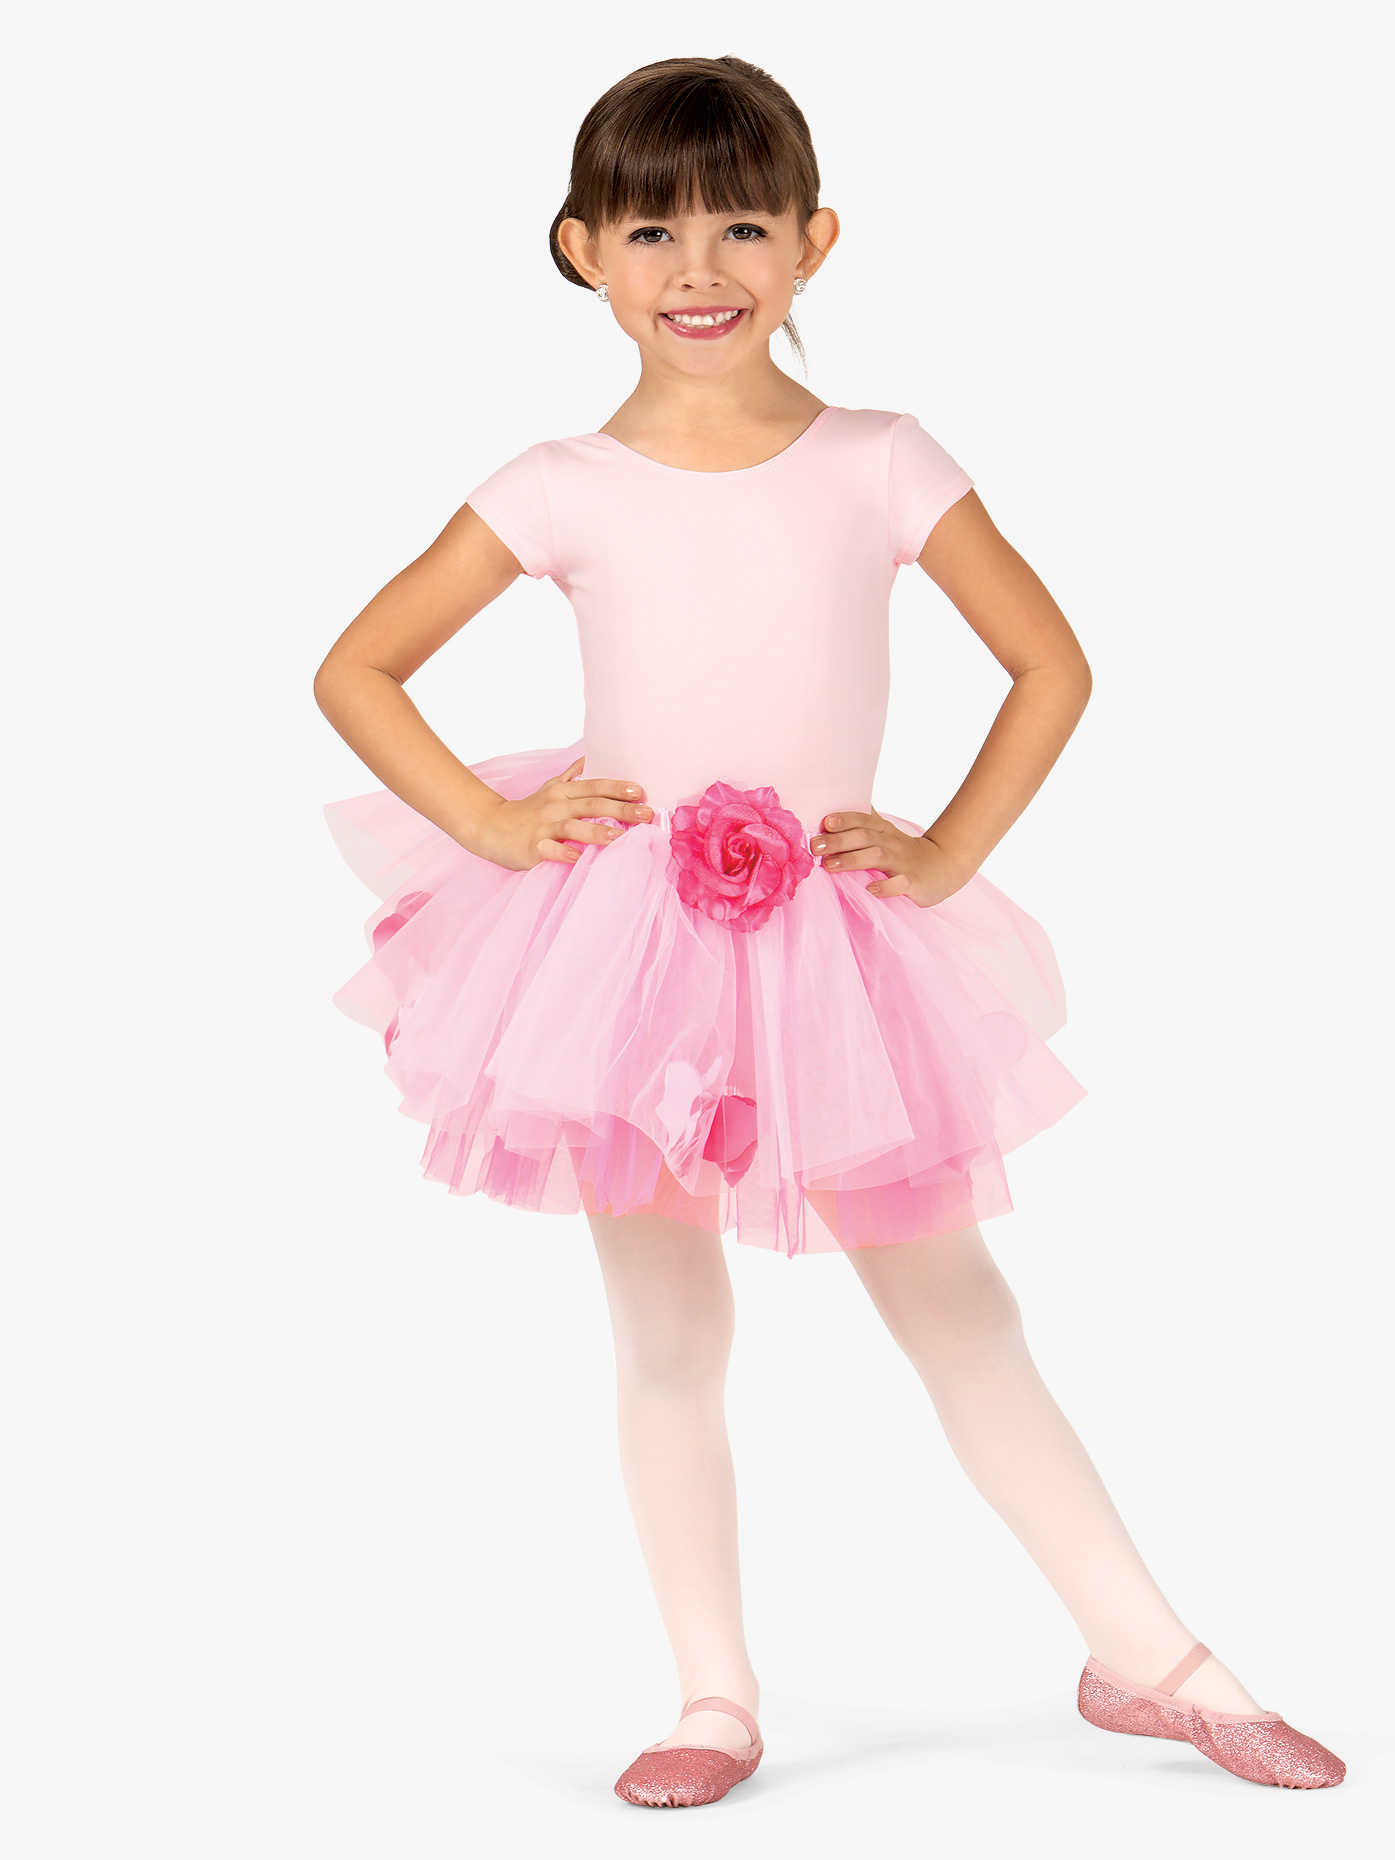 La Petite Ballerina Child Rose Tutu Skirt With Petals SK596